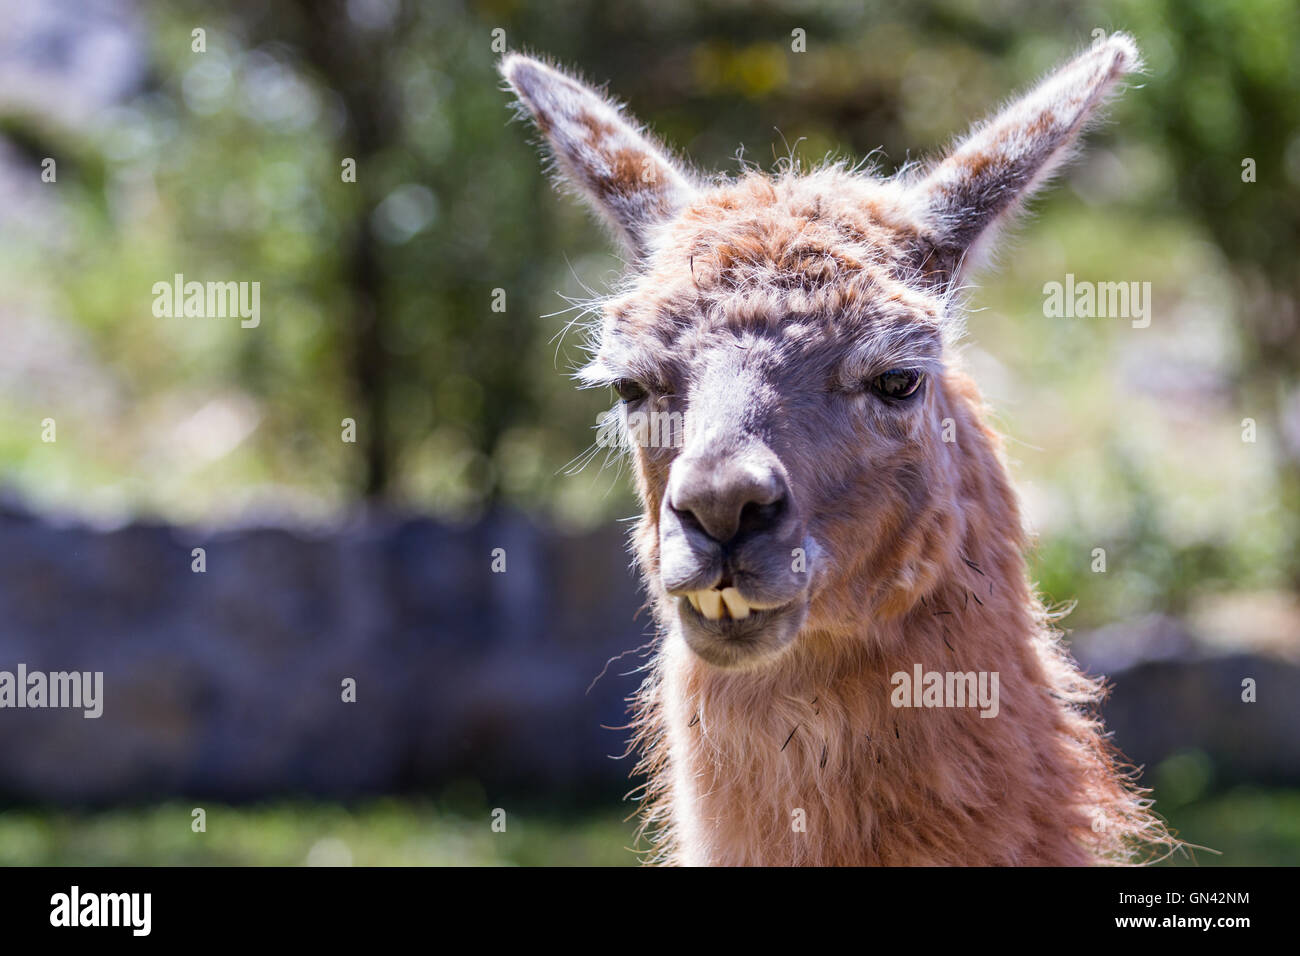 Close up of a llama in Chinchero Peru on a bright sunny day - Stock Image